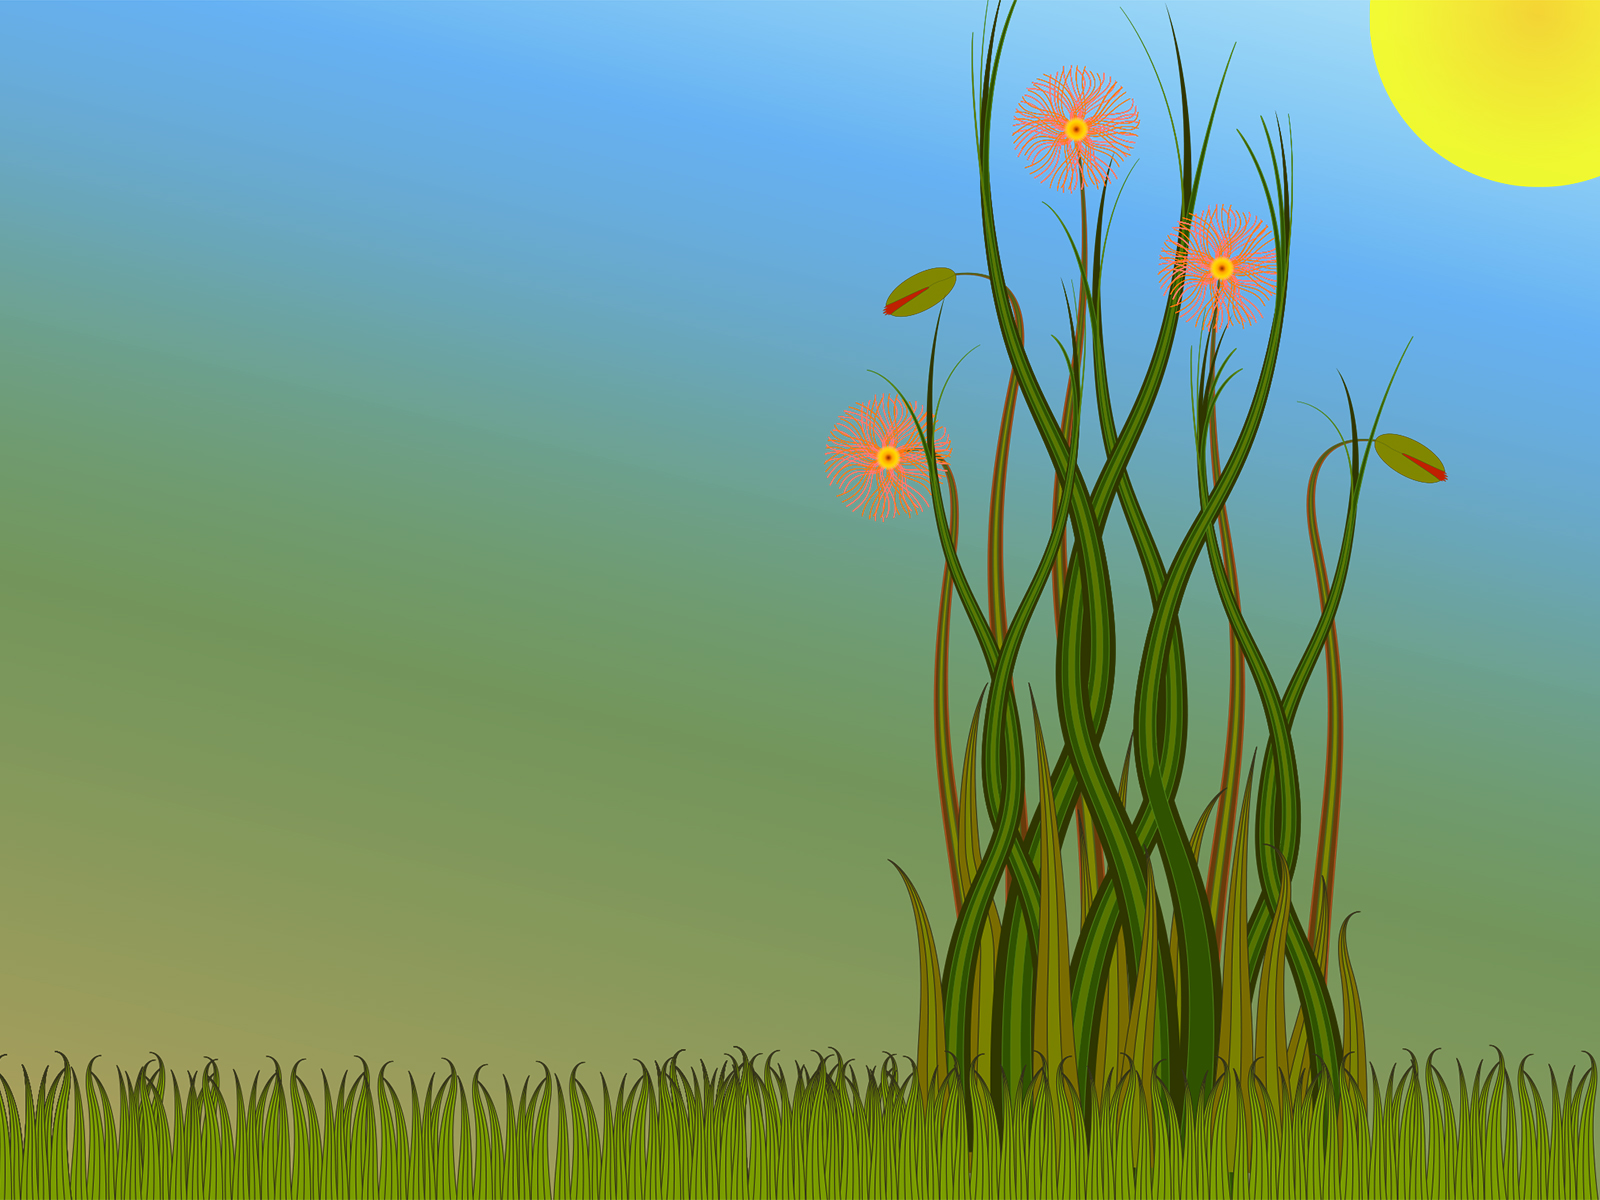 Flowers ppt backgrounds page 3 of 9 ppt grounds grass and flowers download free toneelgroepblik Image collections